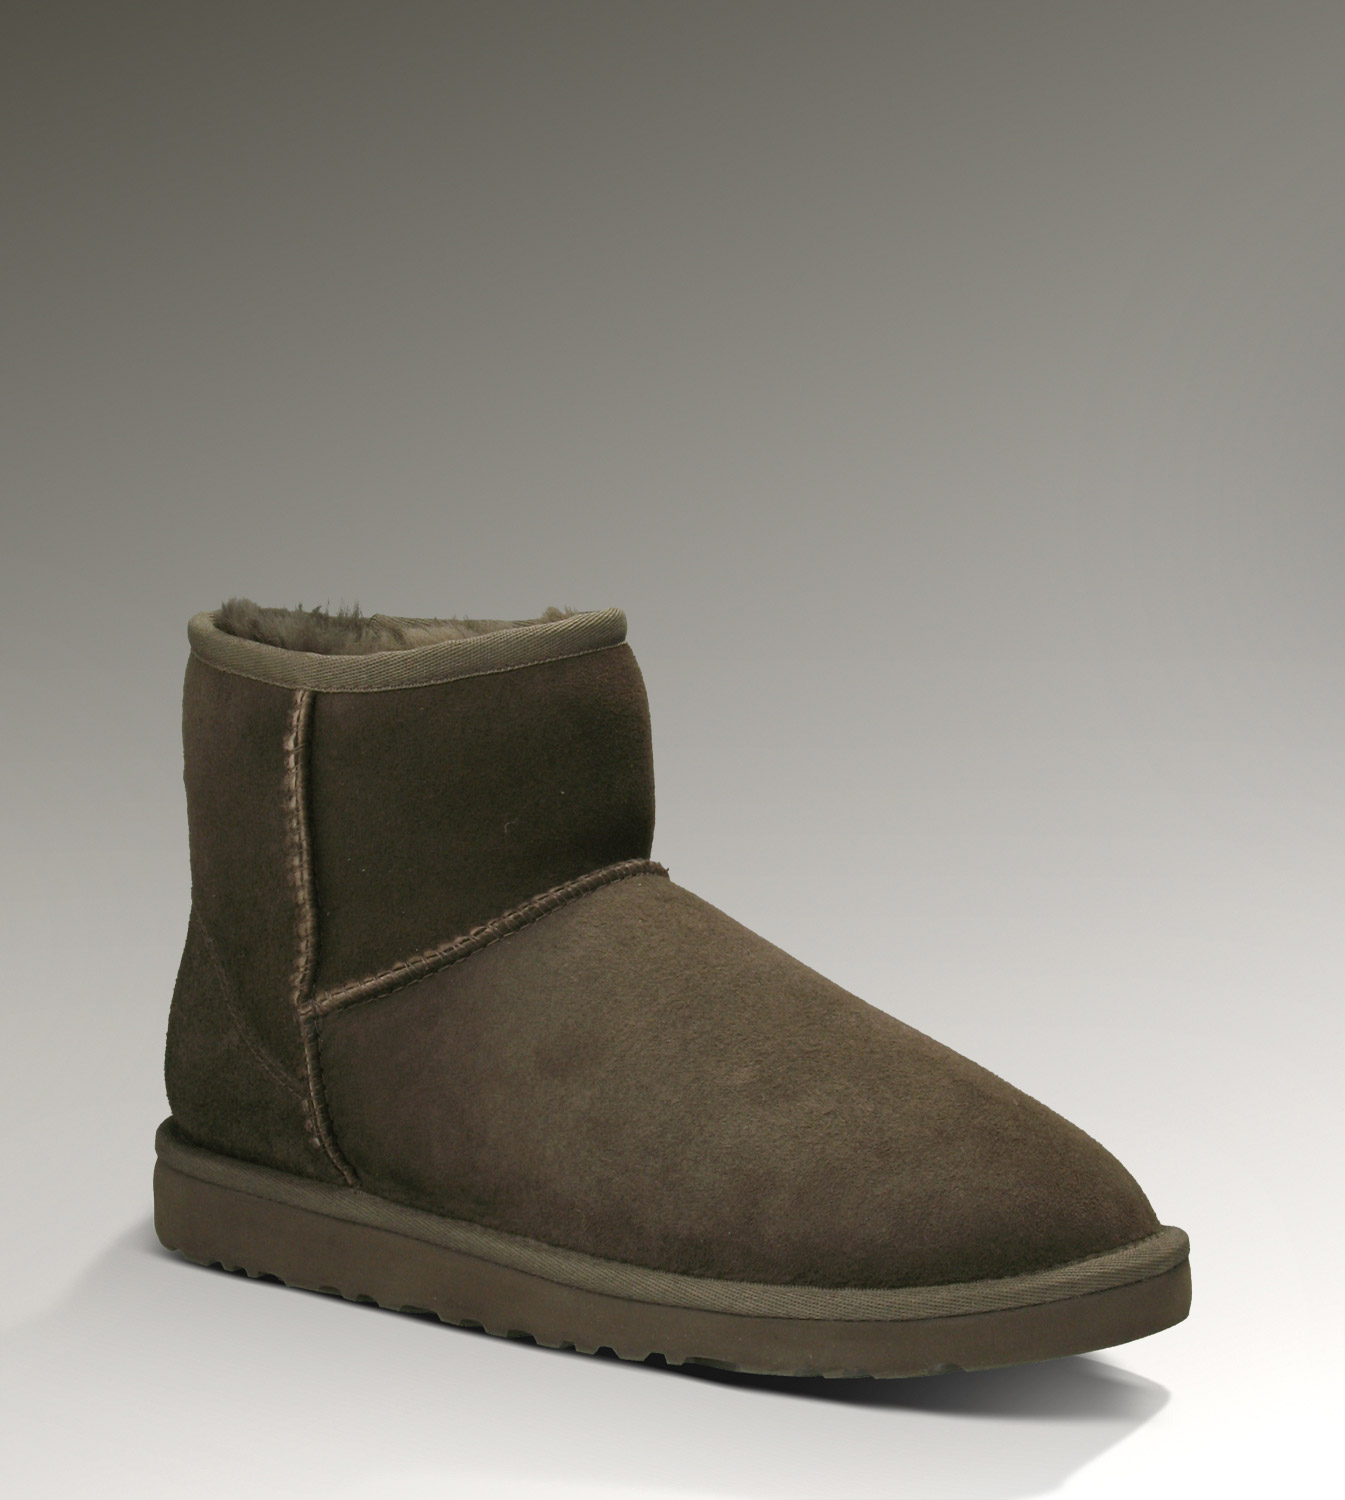 UGG Classic Mini 5854 Chocolate Boots